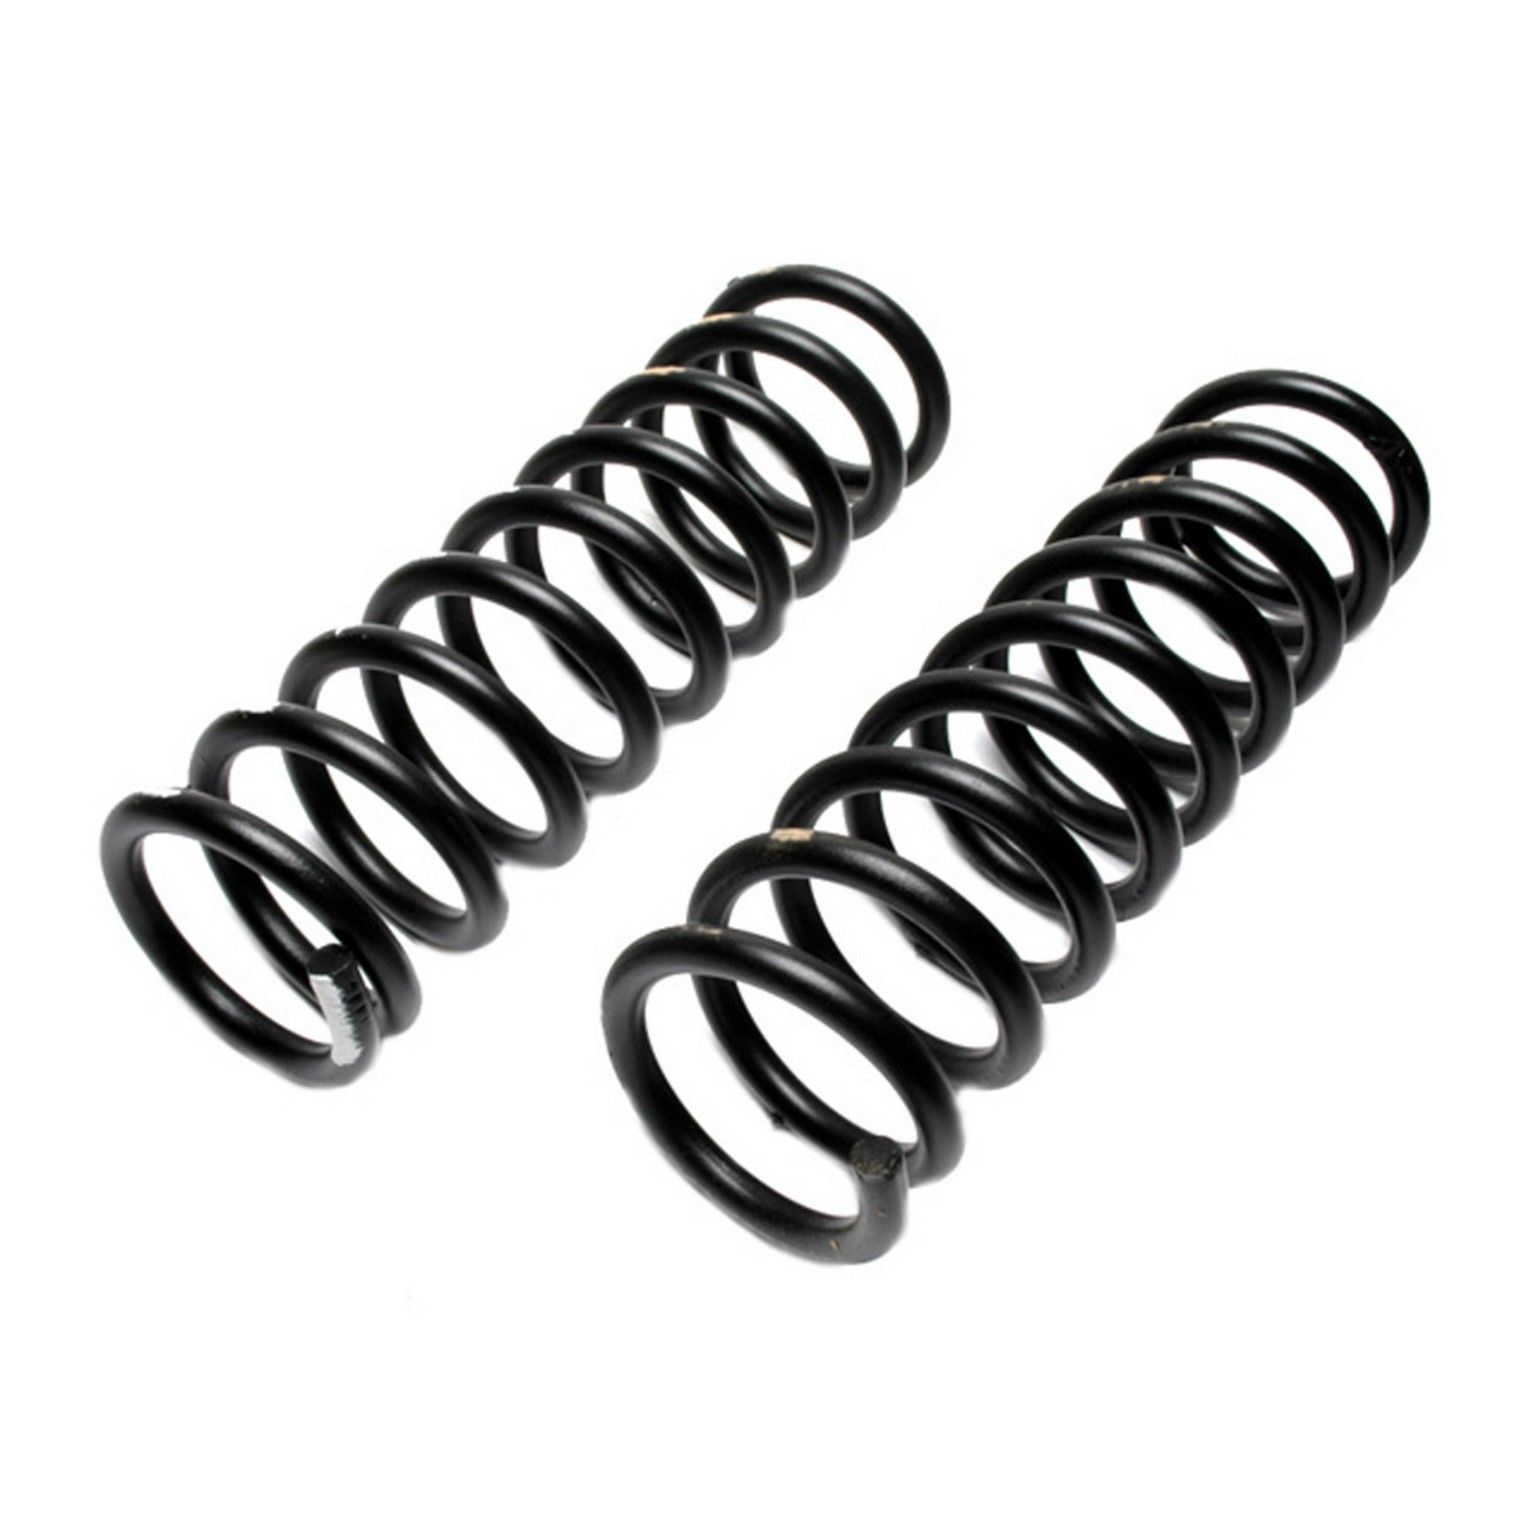 Pontiac Catalina Coil Spring Set Replacement (Mevotech, Moog) » Go-Parts